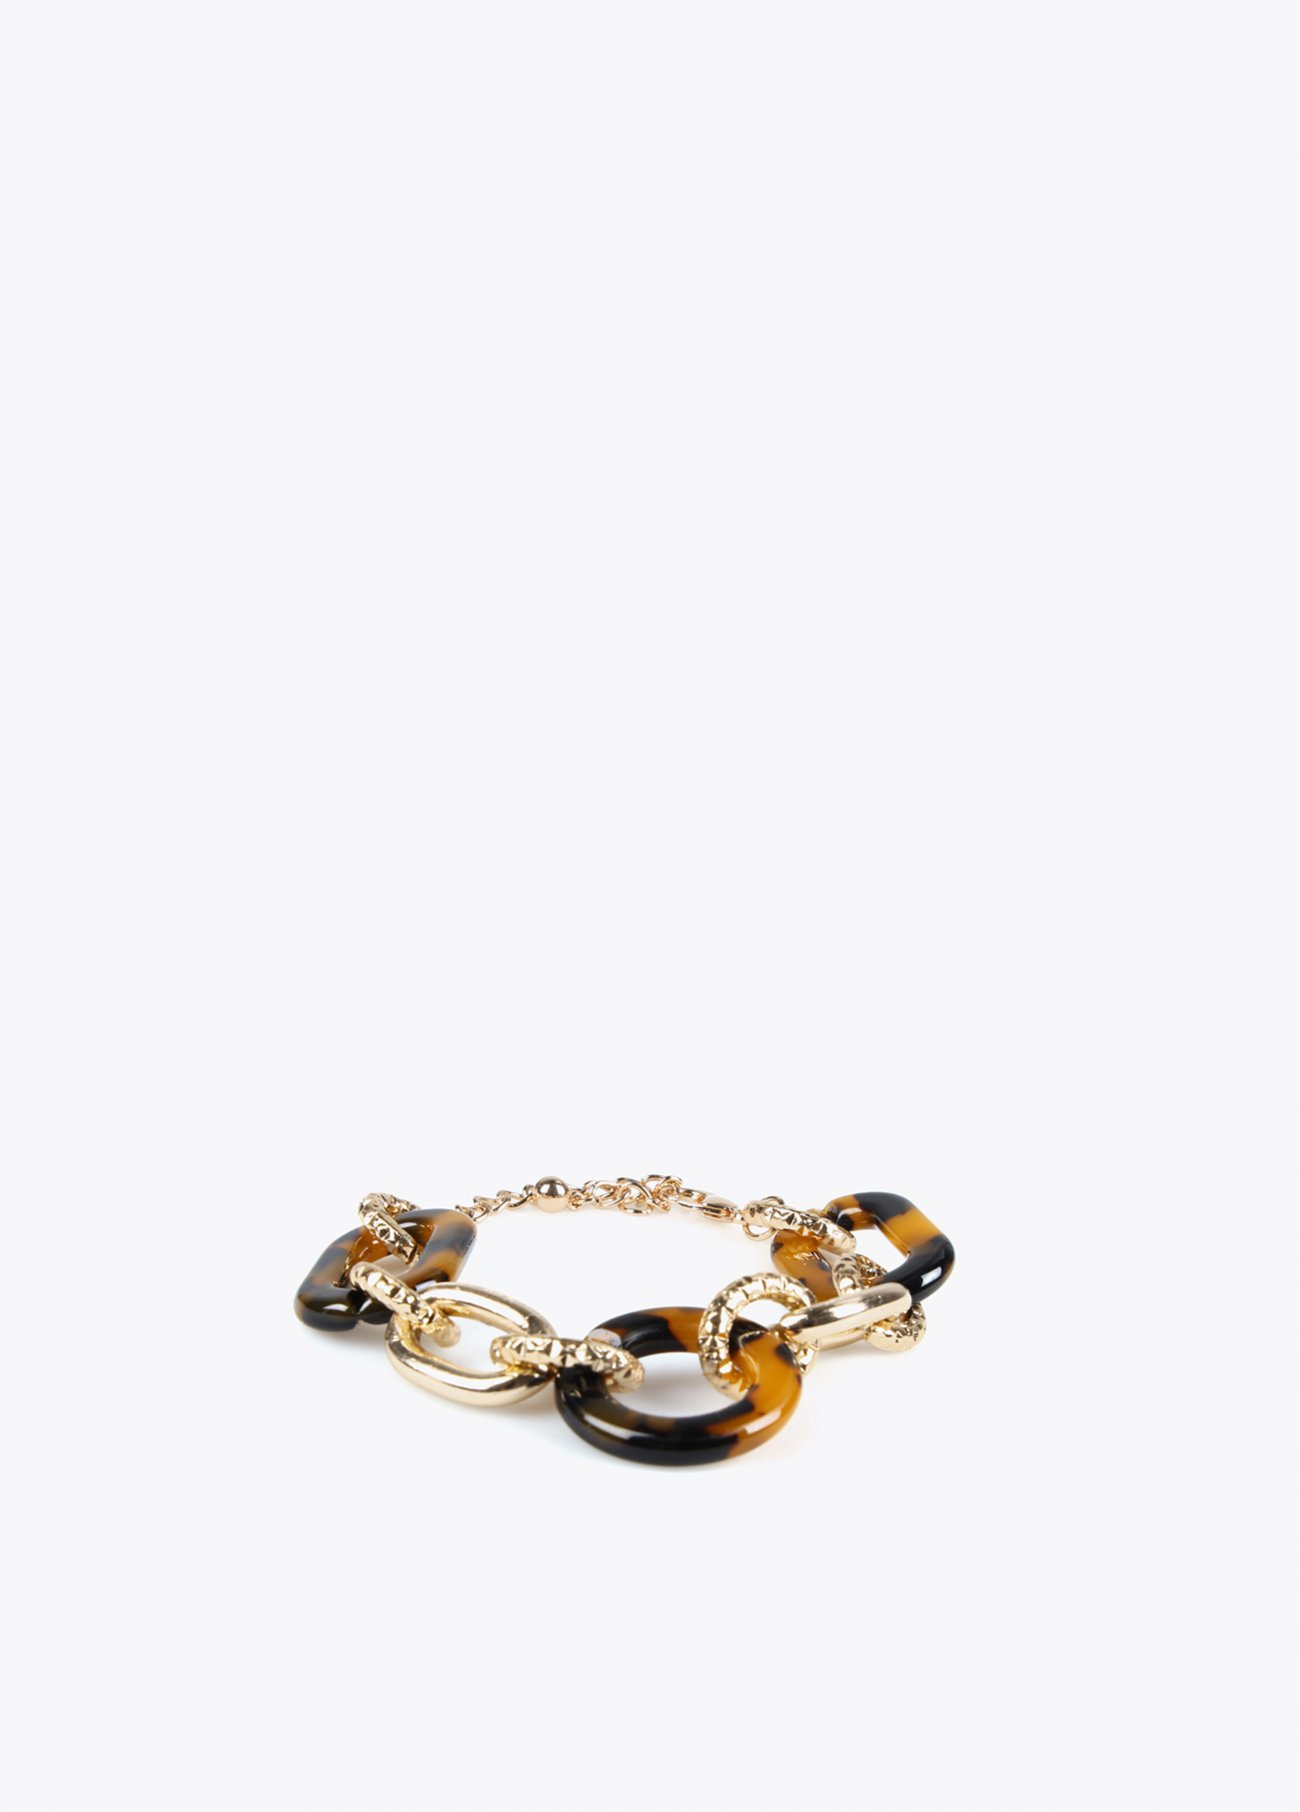 Bracelet with golden and resin links